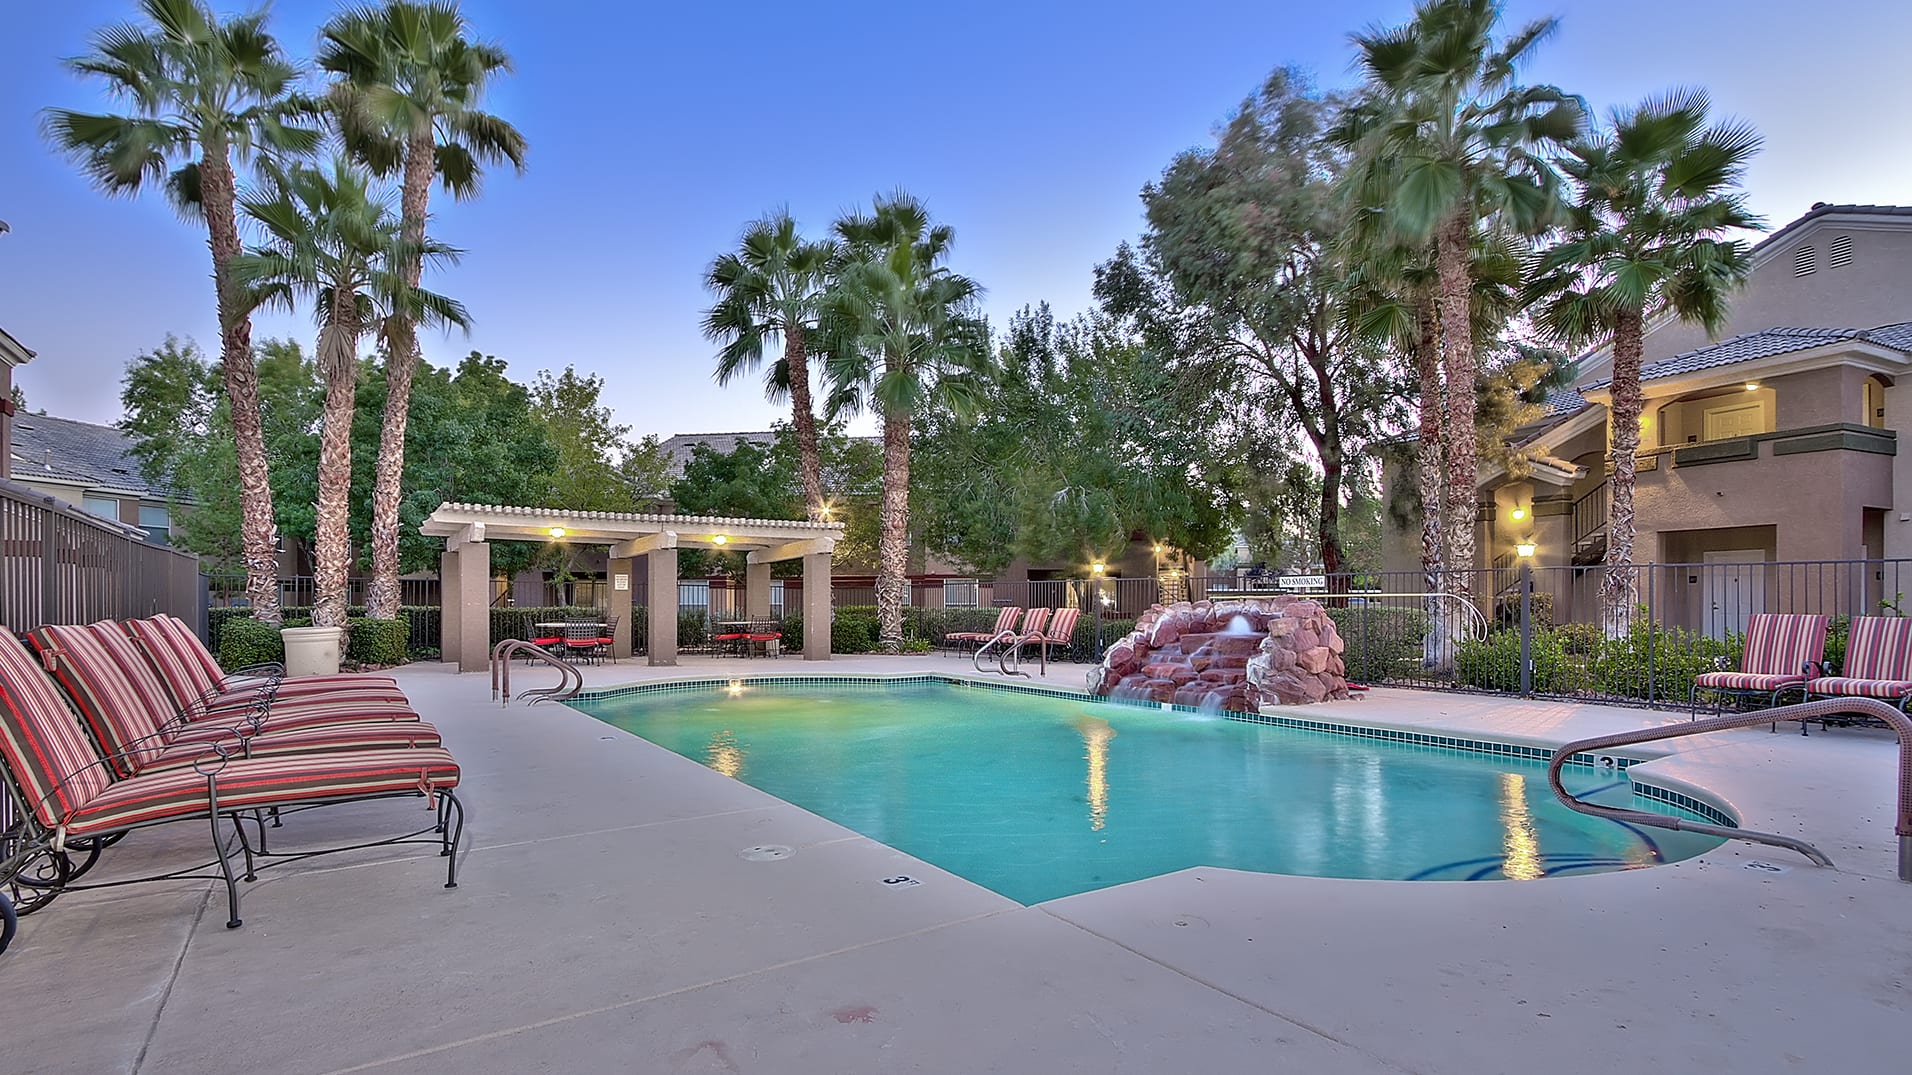 Gated resort-style pool with stone waterfall feature, cushioned lounge seating, covered patio area with tables and chairs, and large palm trees surrounding.